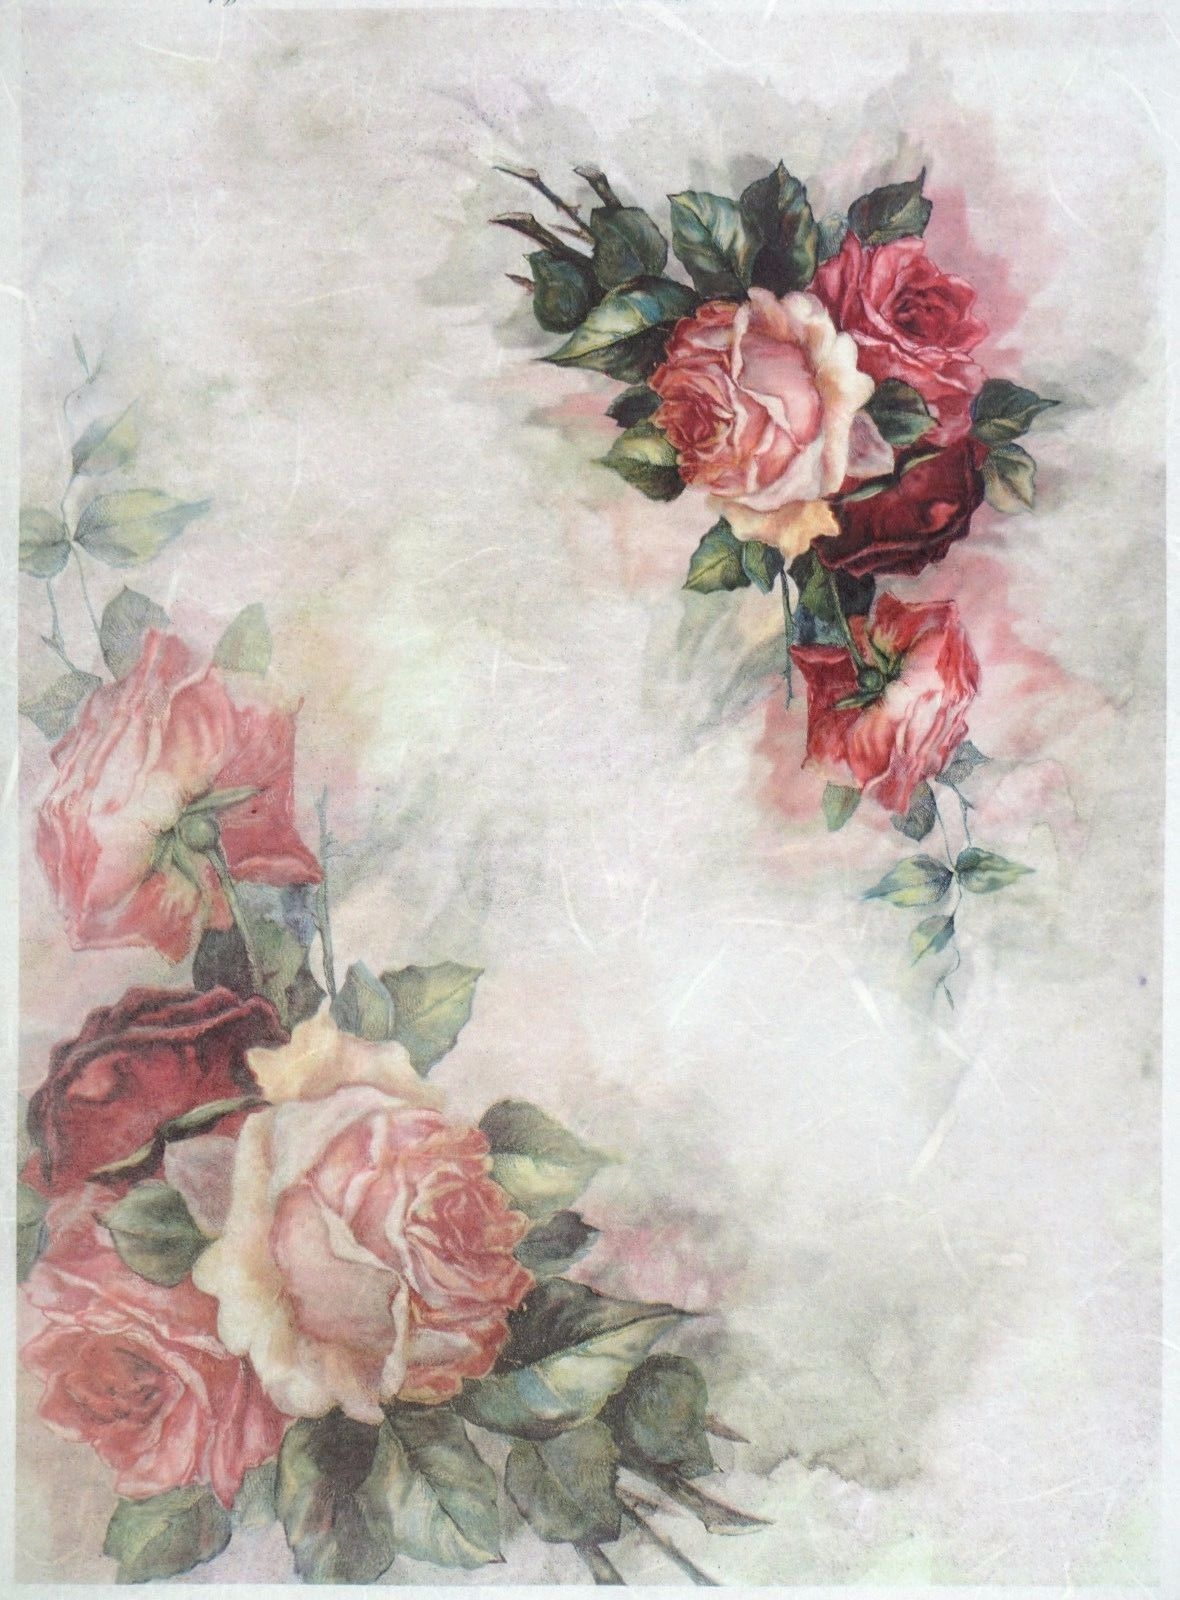 Ricepaper for Decoupage Decopatch Scrapbook Craft Sheet A/3 Vintage Painted Rose | eBay